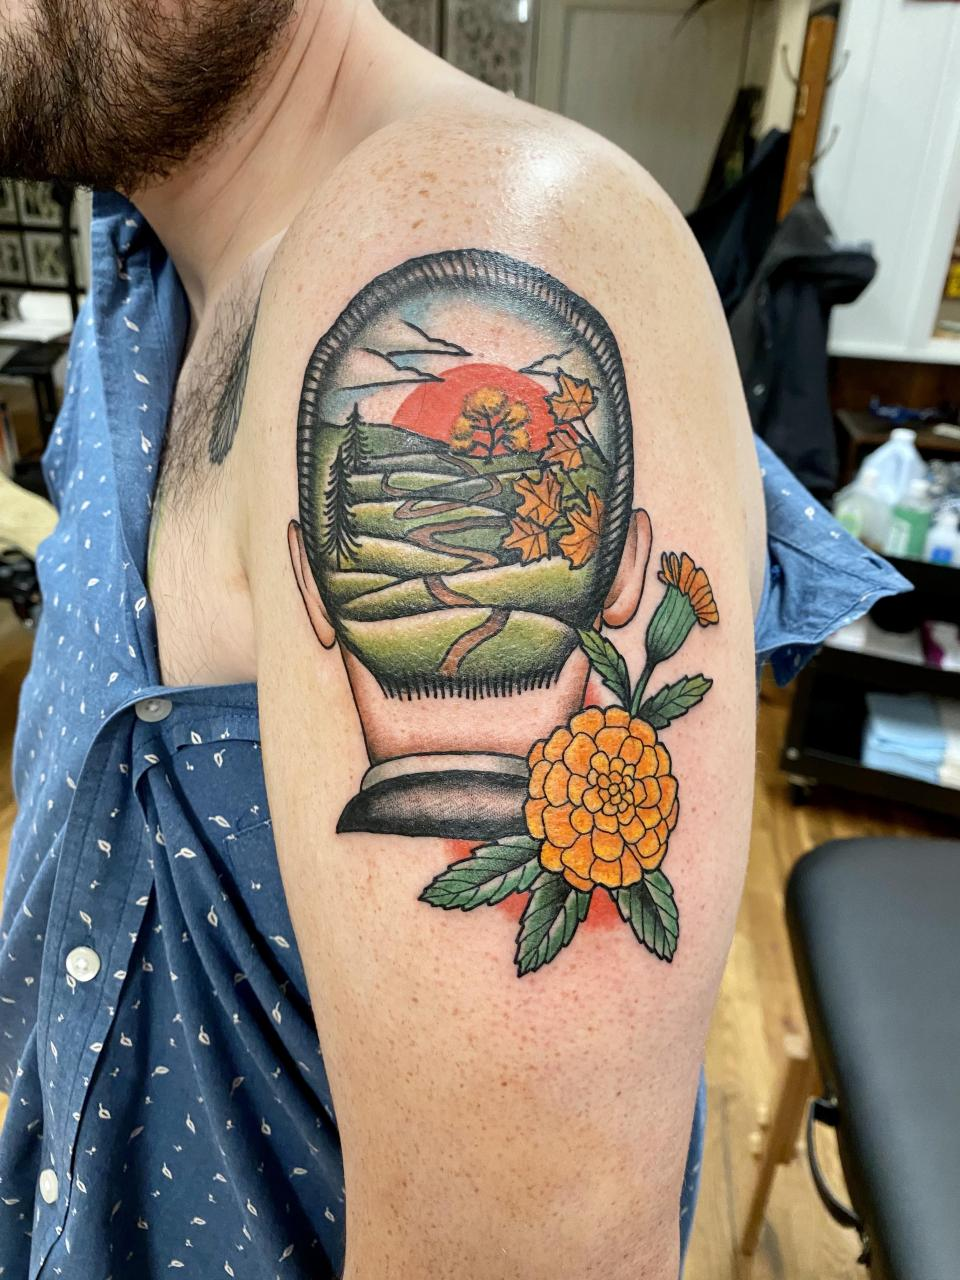 My new arm piece done by Redbeard at Good Land Tattoo in Milwaukee, WI